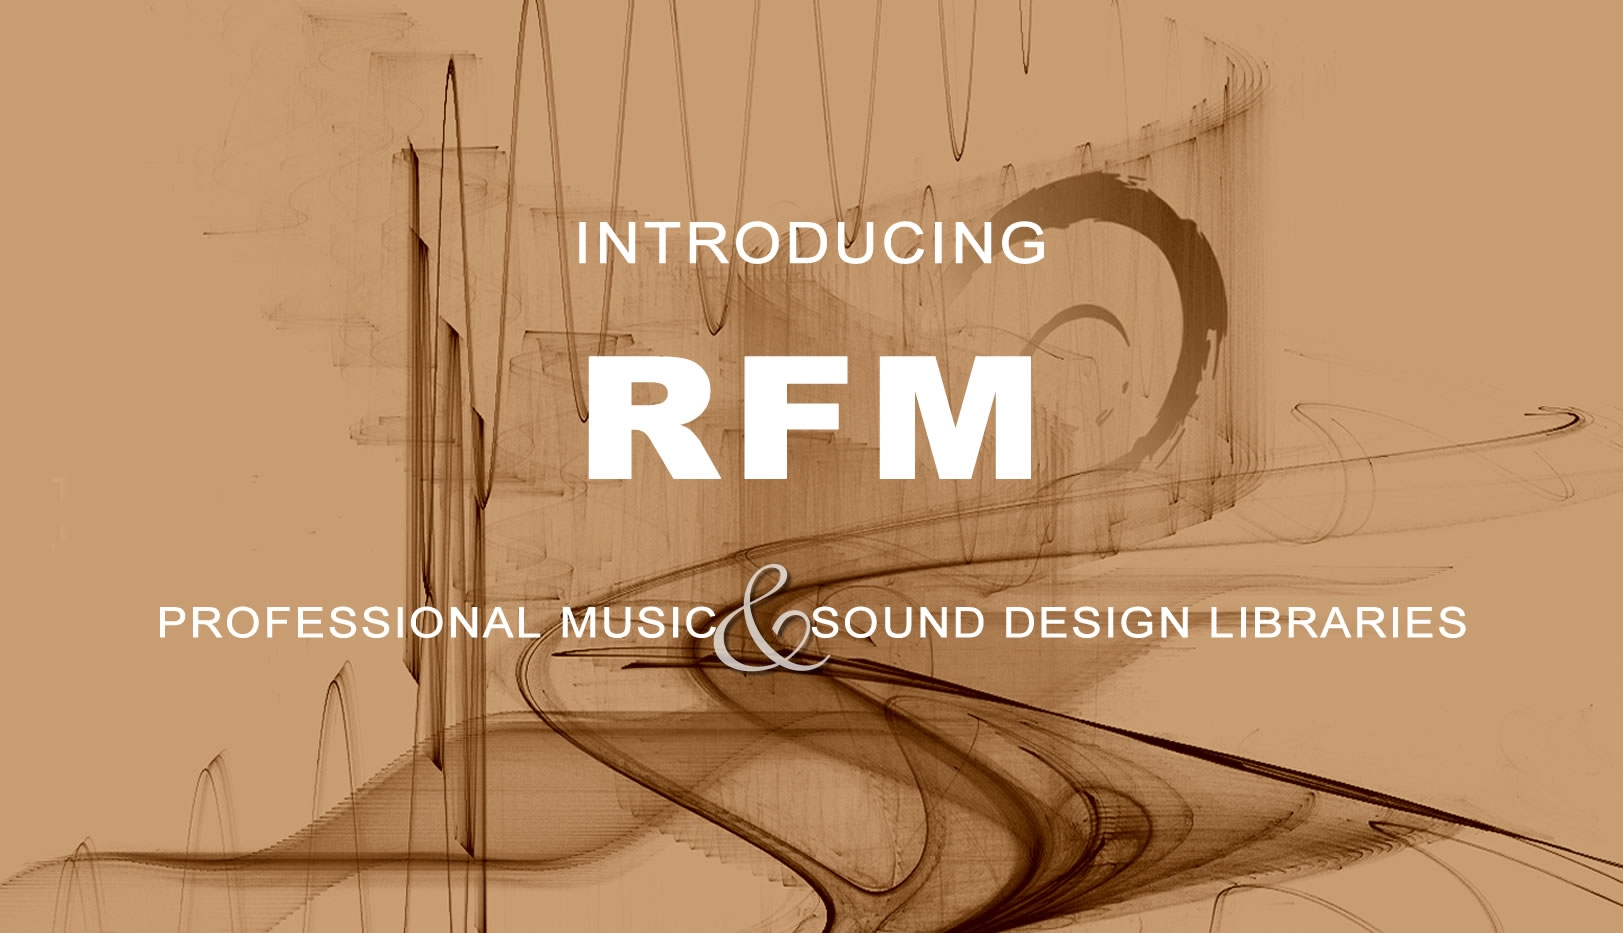 RFM - Professional Music and Sound Design Libraries